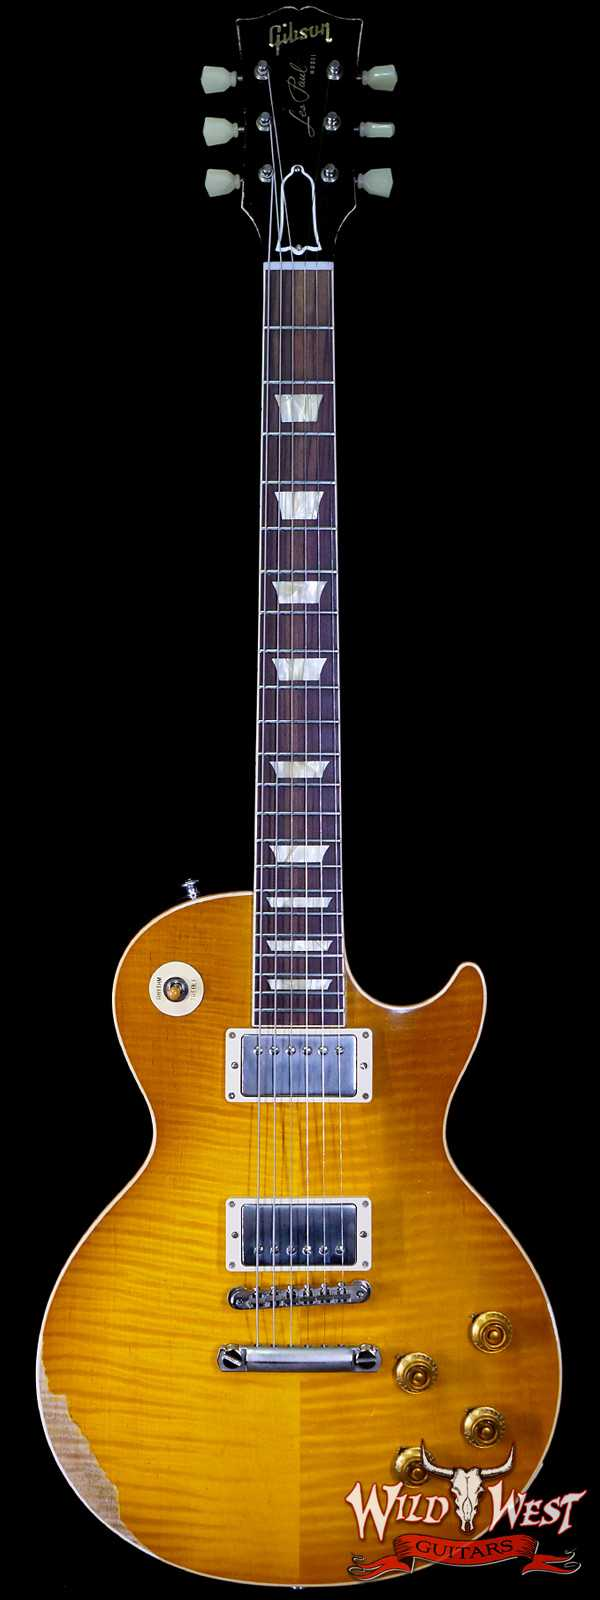 Gibson Custom Shop M2M Hand Selected Kill Top 60th Anniversary 1959 Les Paul Standard Heavy Aged Dirty Lemon Fade 8.60 lbs